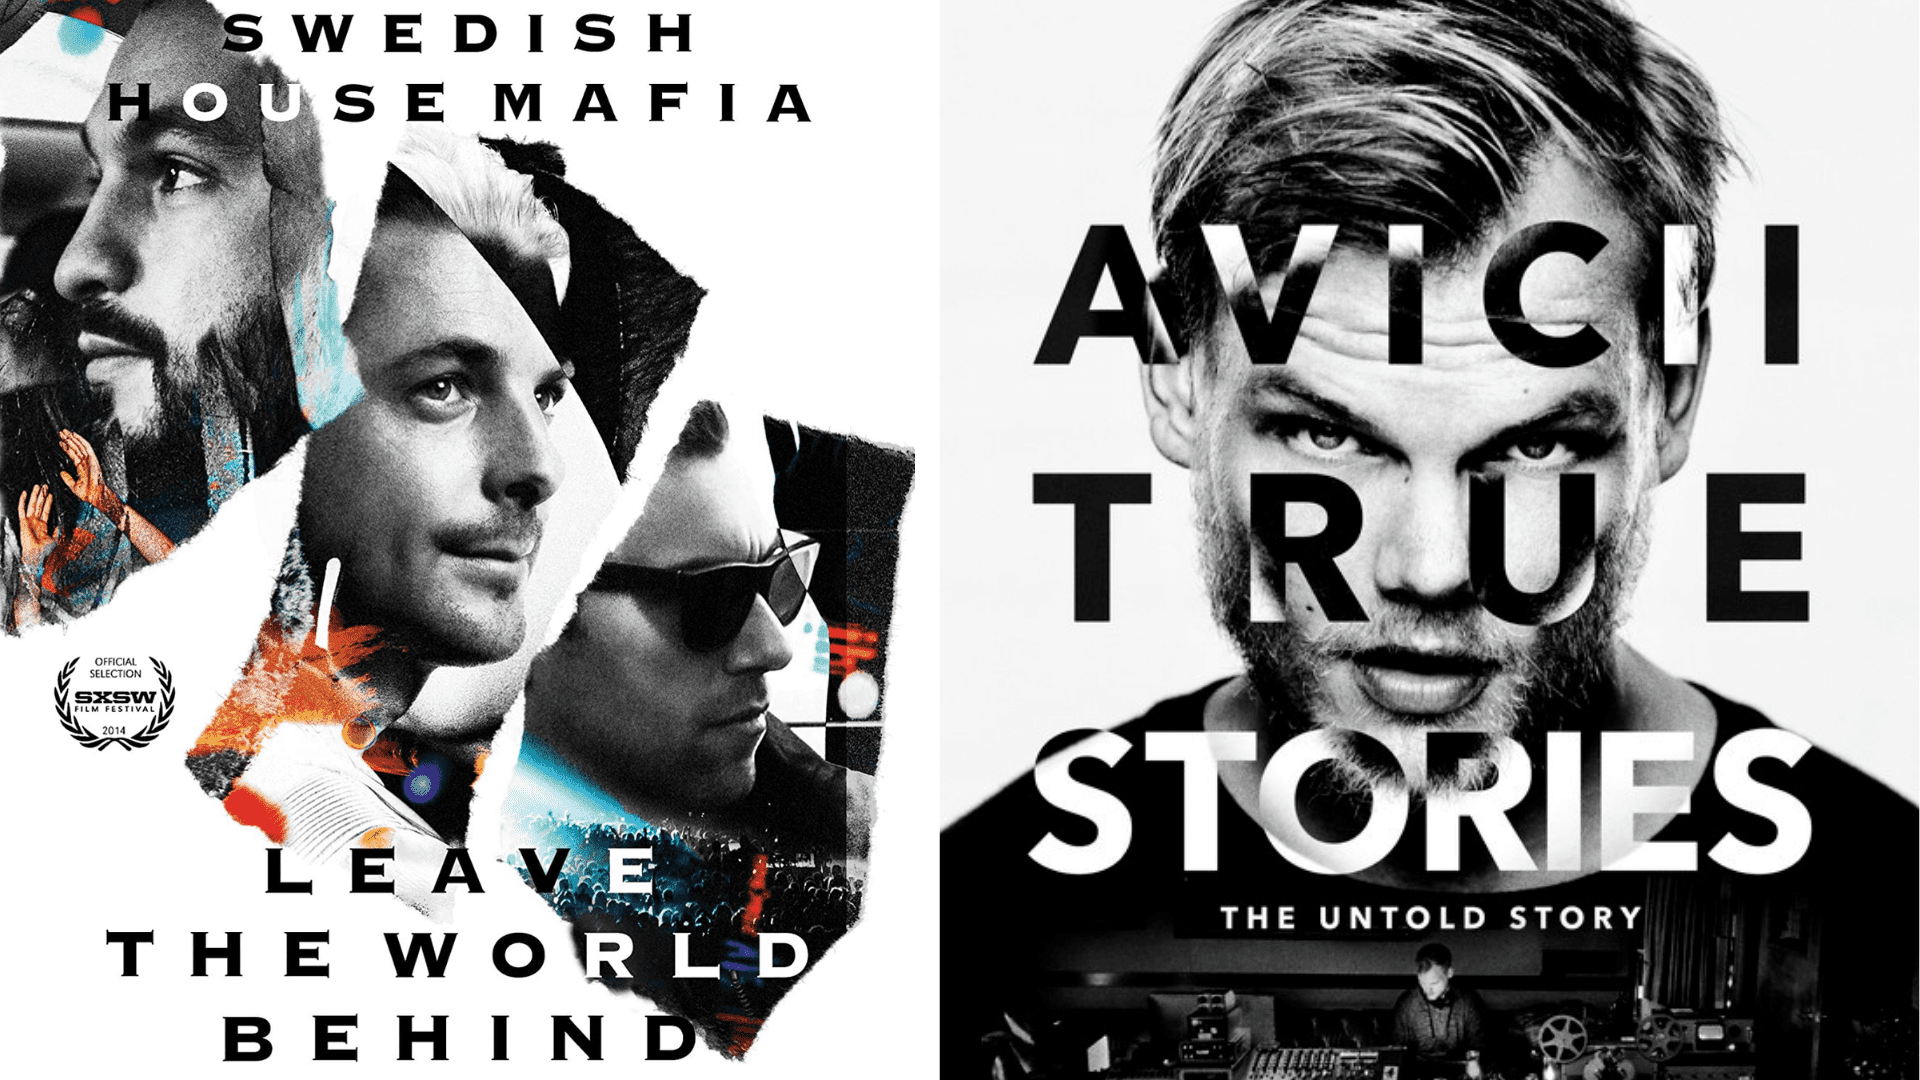 Swedish House Mafia, Avicii